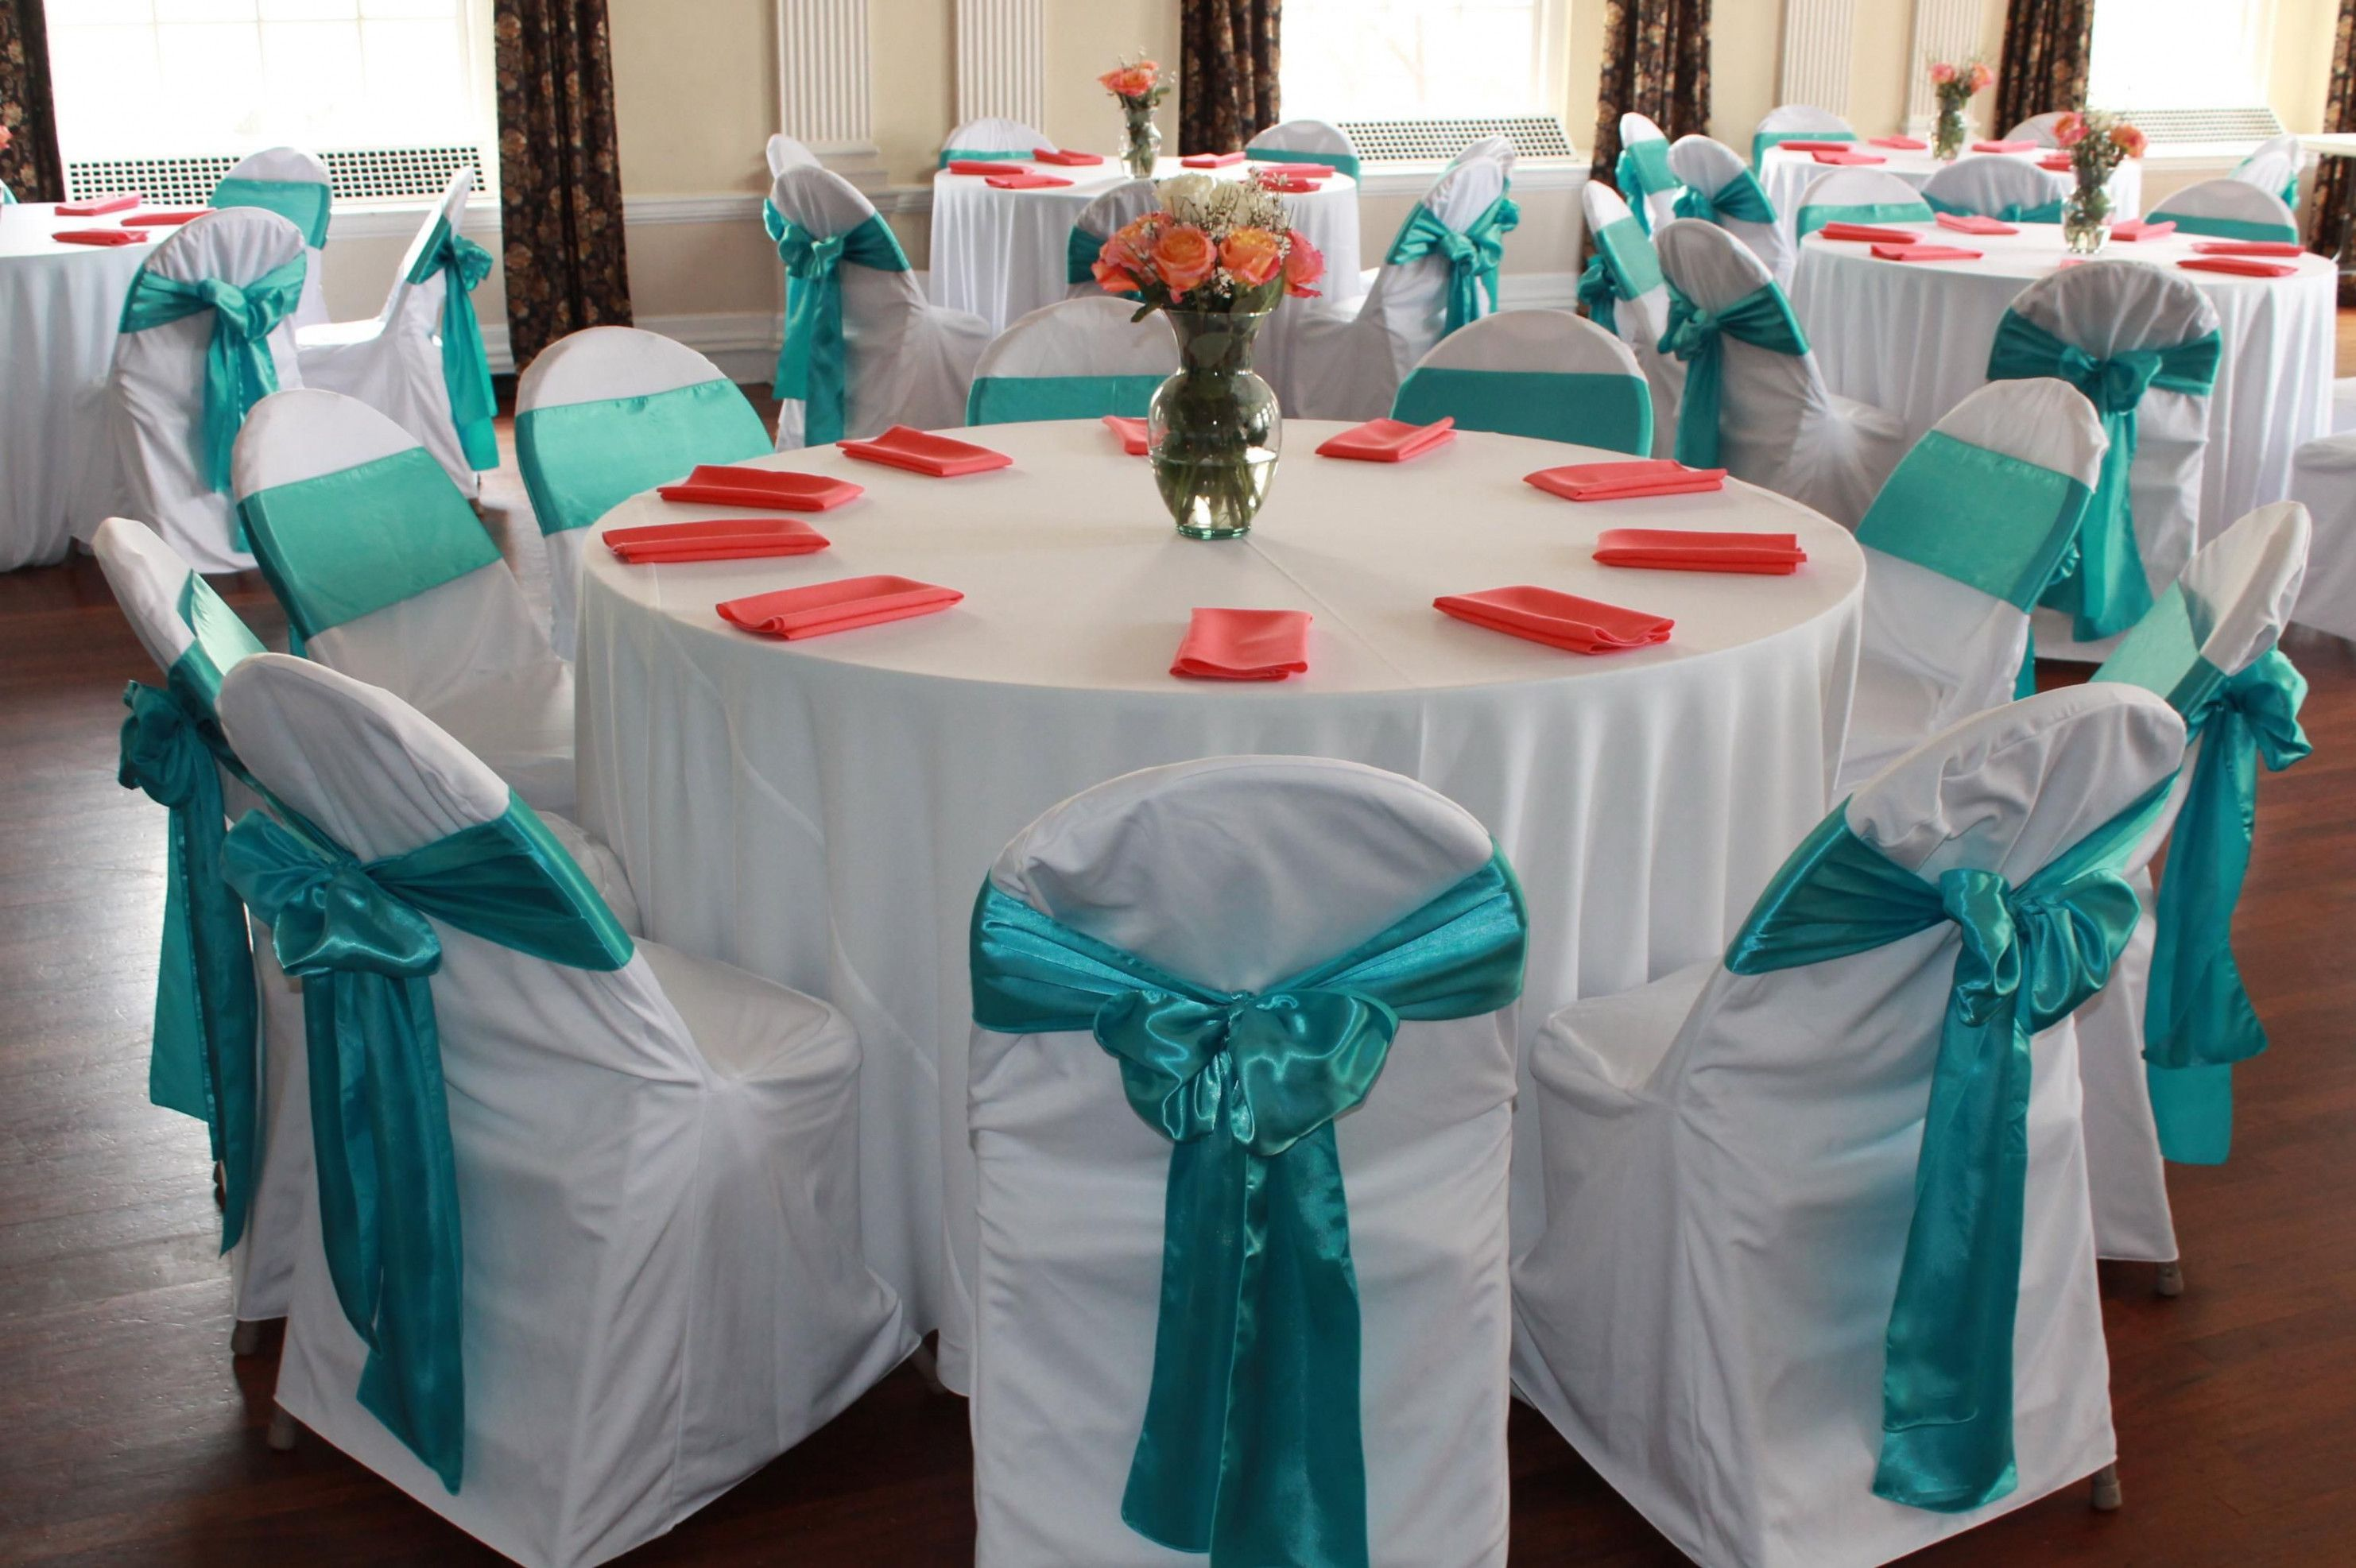 Before You Make A Decision On Wedding Chair Rentals Read This In 2020 Wedding Chair Decorations Wedding Ceremony Chairs Burlap Wedding Decorations